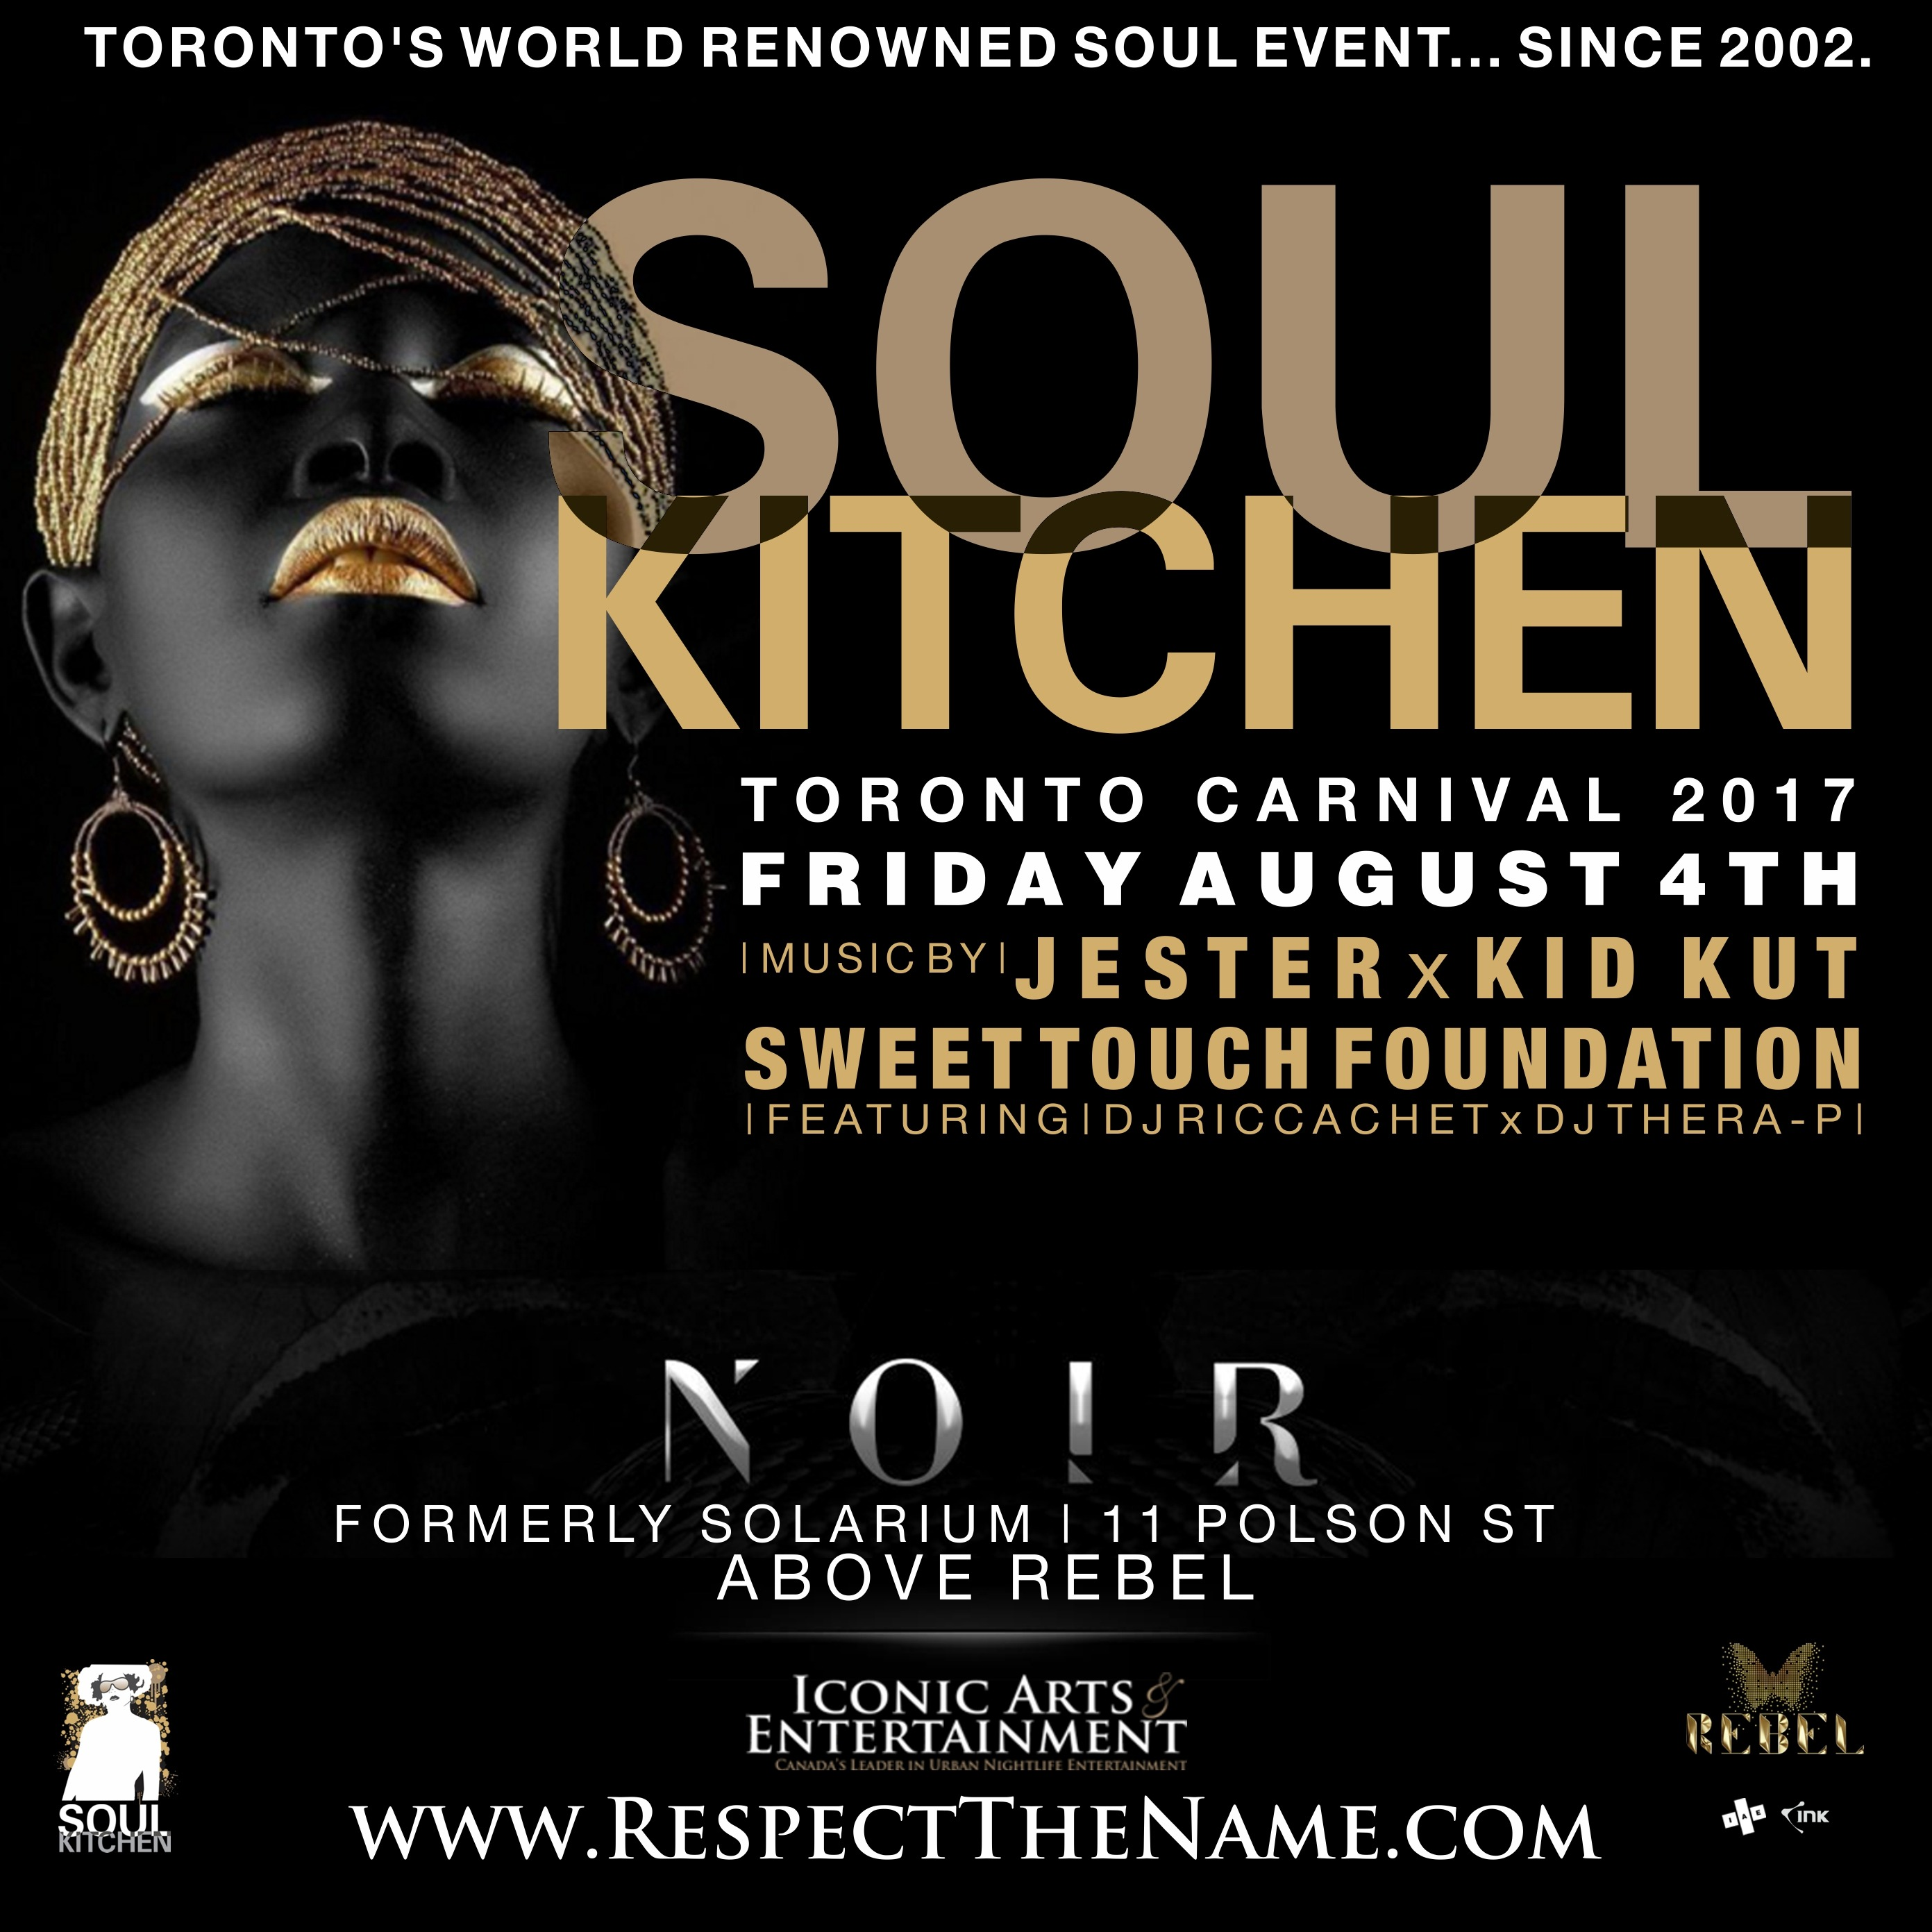 SOUL KITCHEN - CARNIVAL EDITION 2017 | FRIDAY AUGUST 4TH 2017 | NOIR